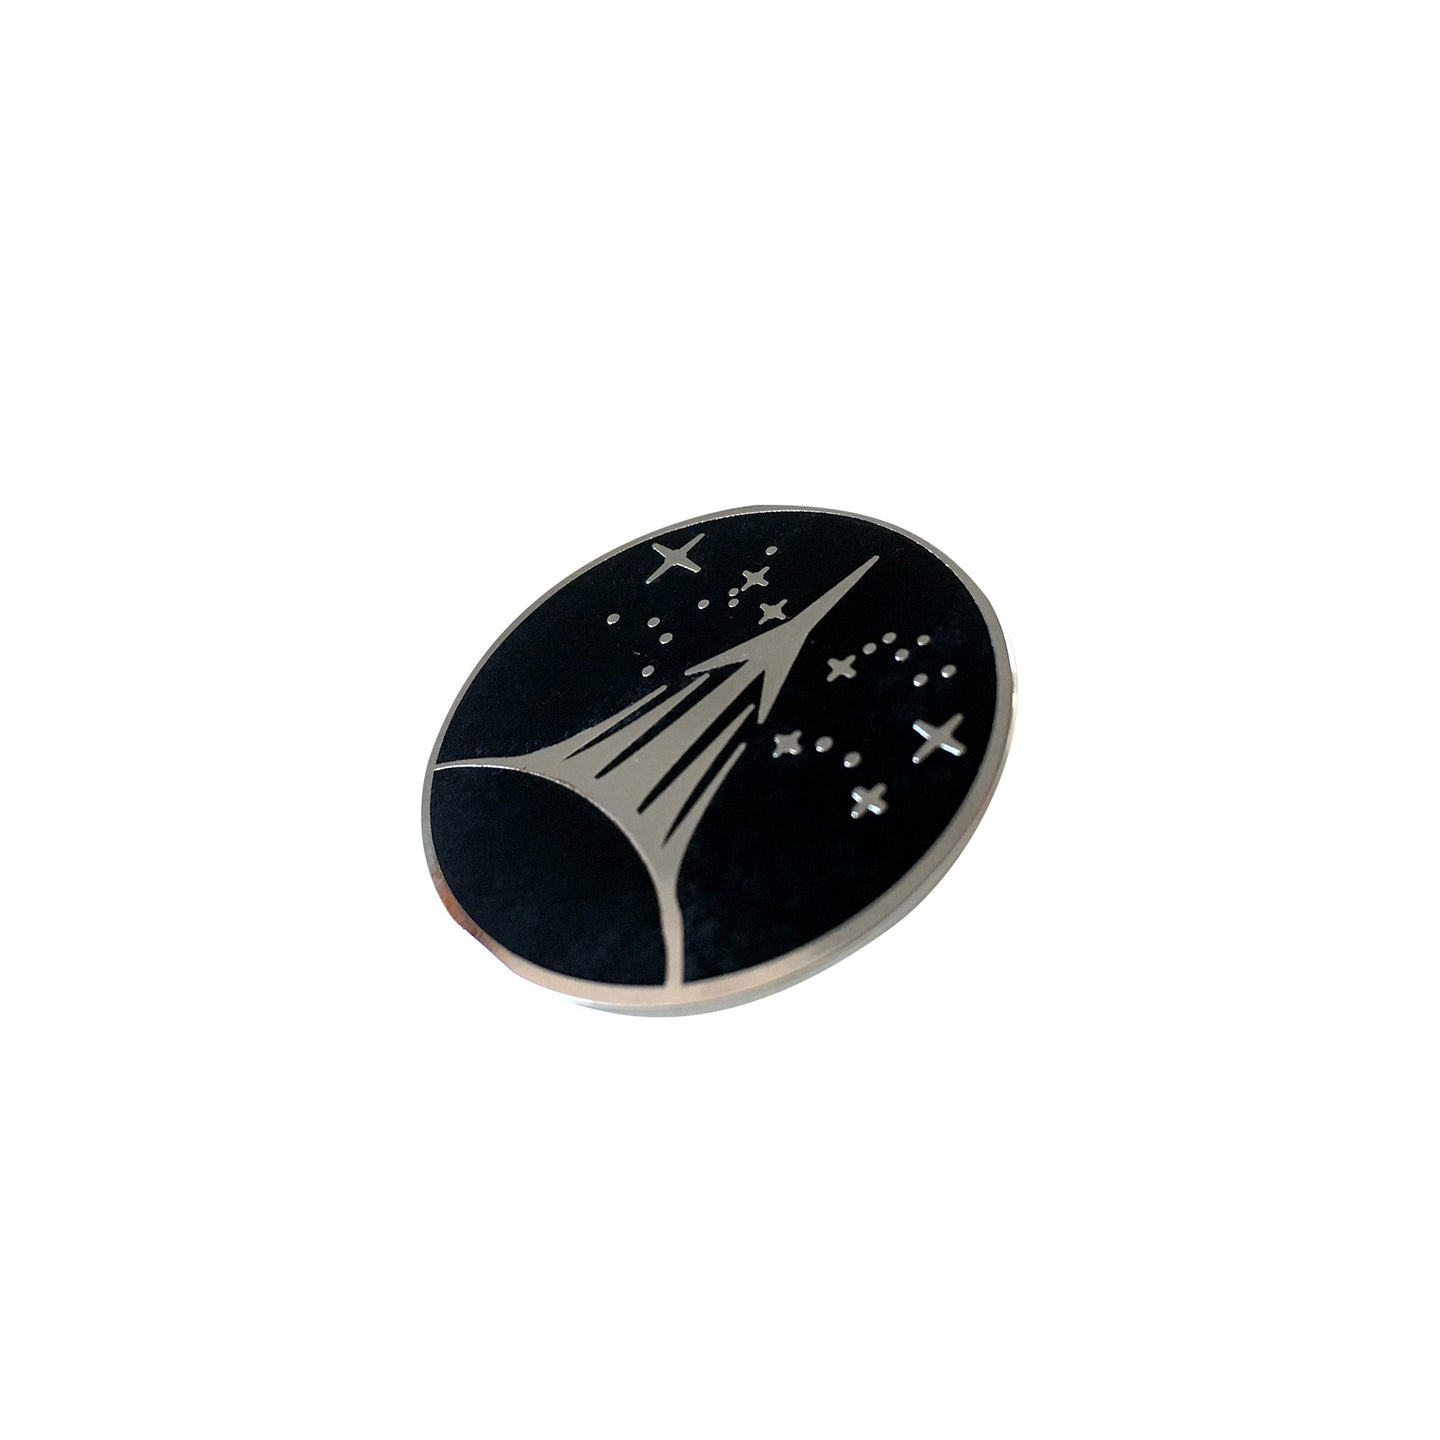 Insignia Pin badge